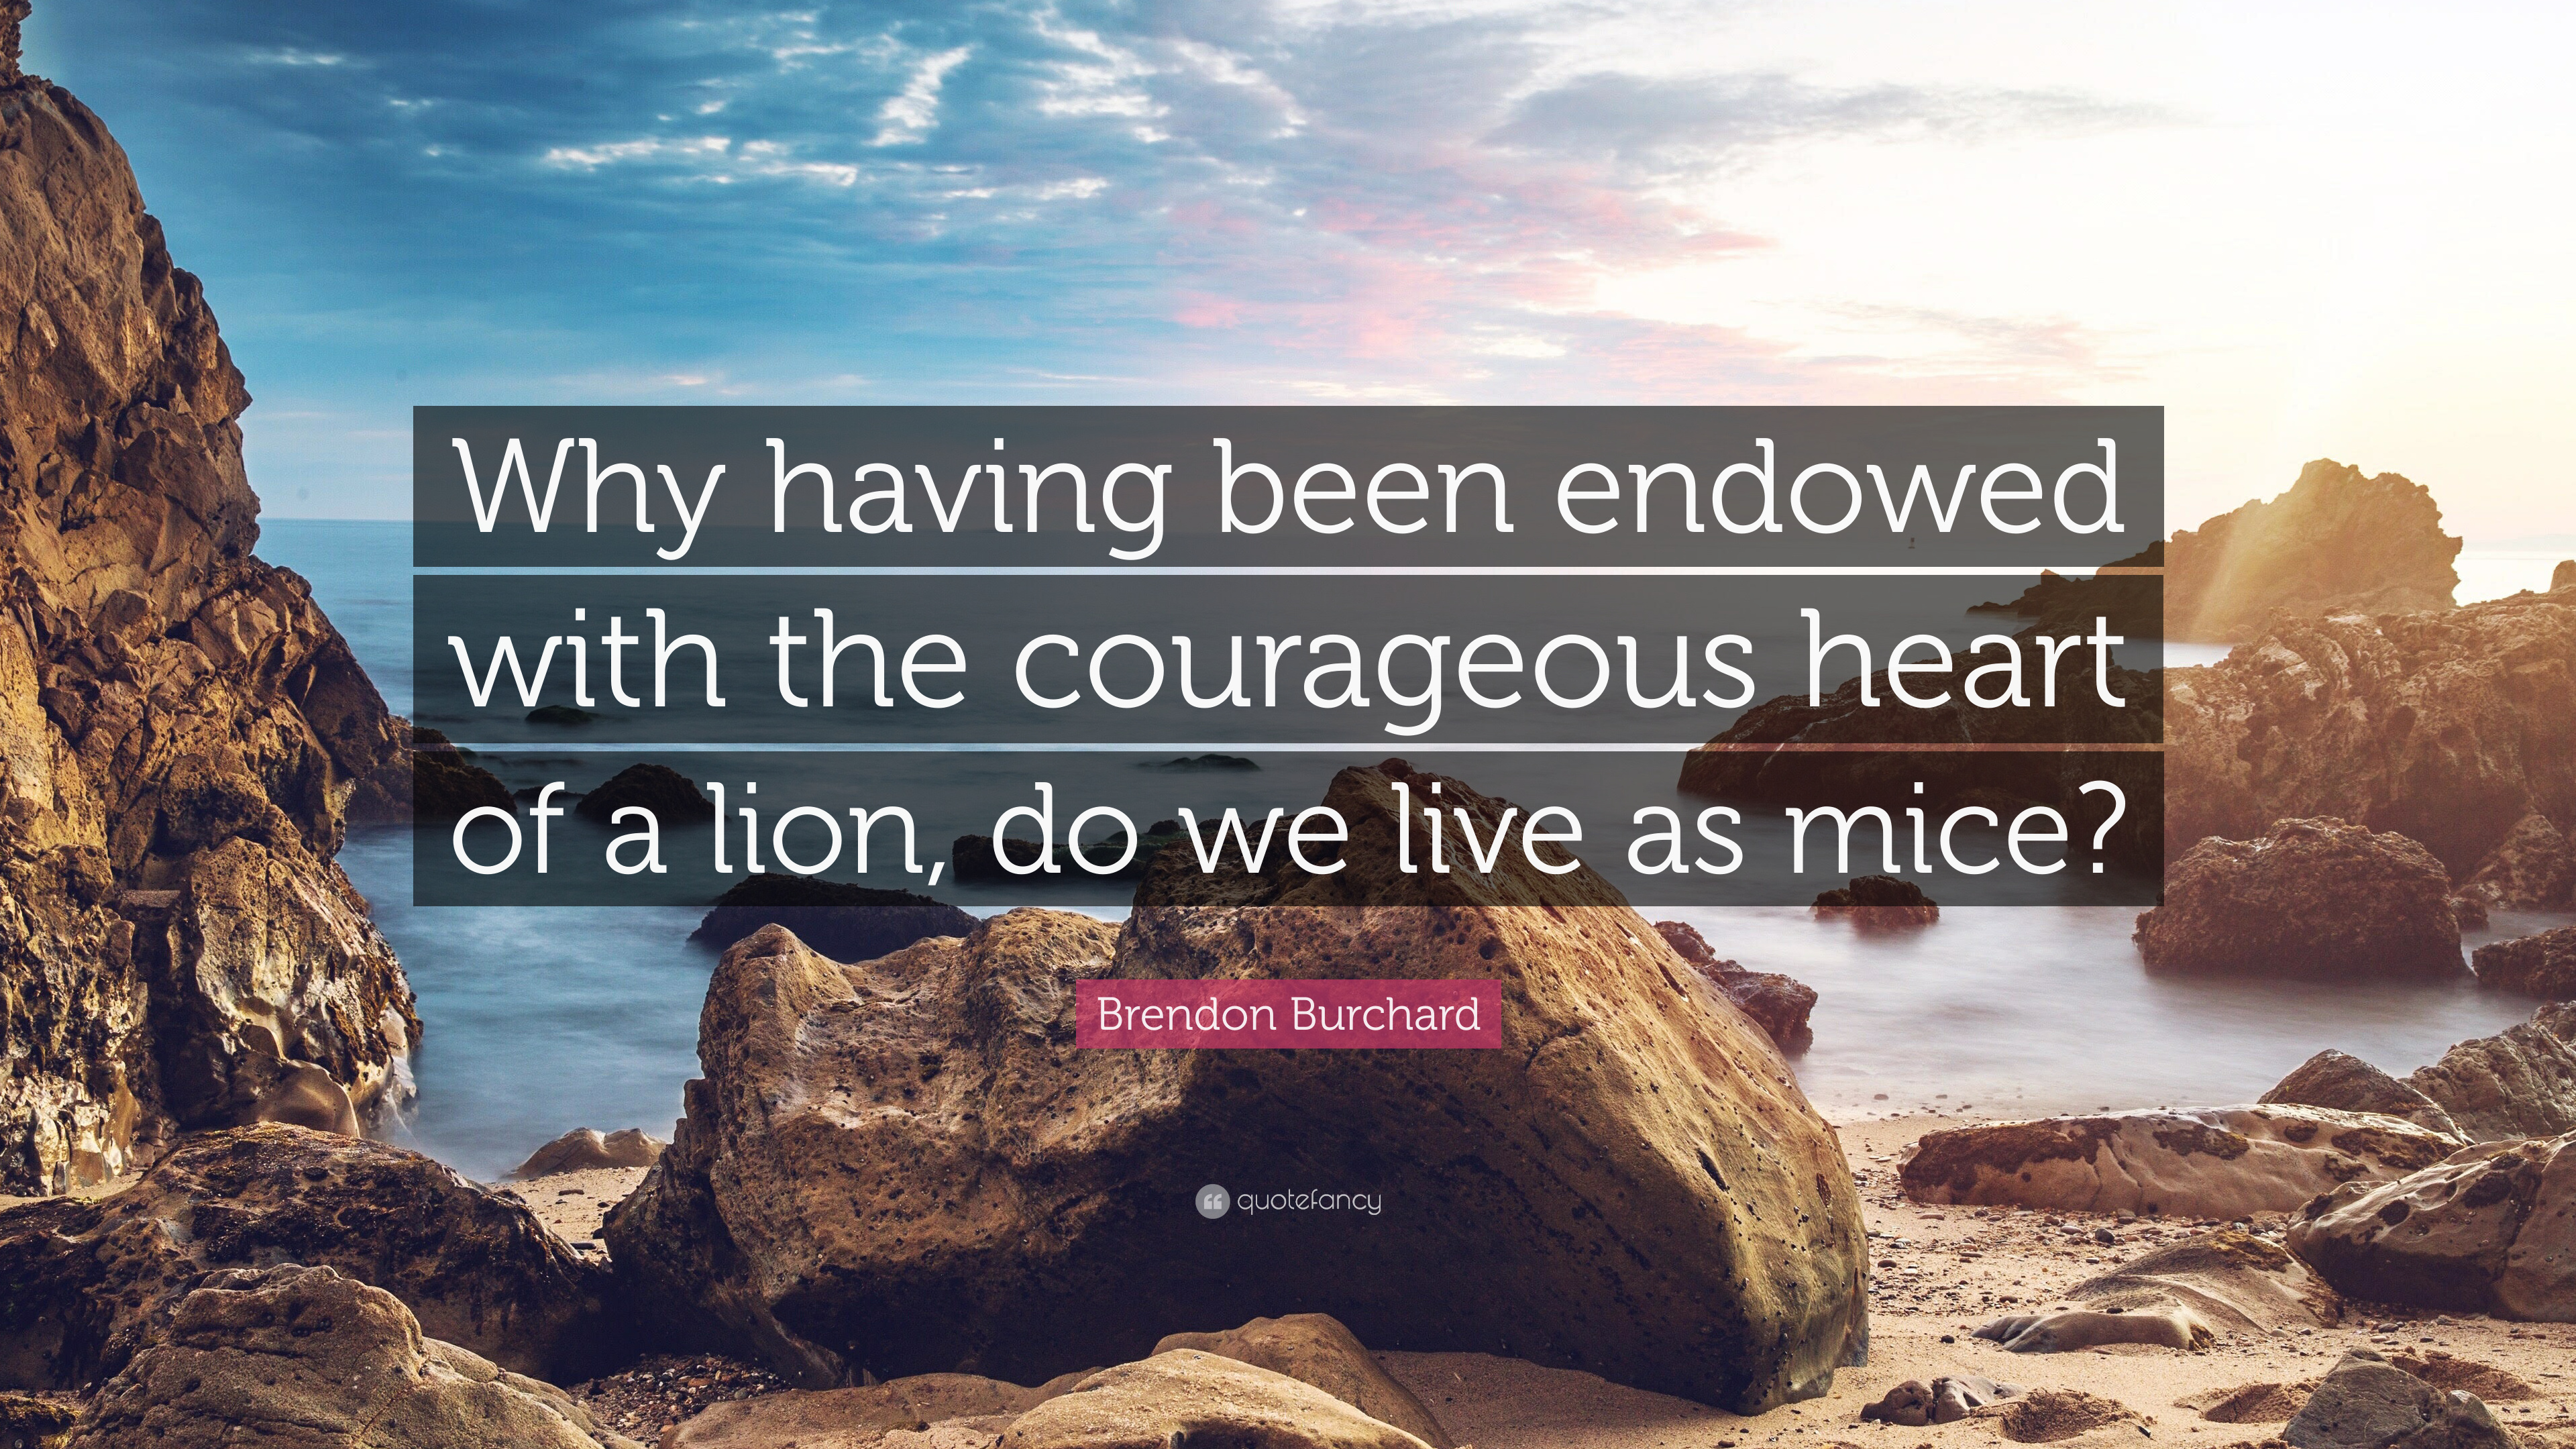 Brendon Burchard Quote Why Having Been Endowed With The Courageous